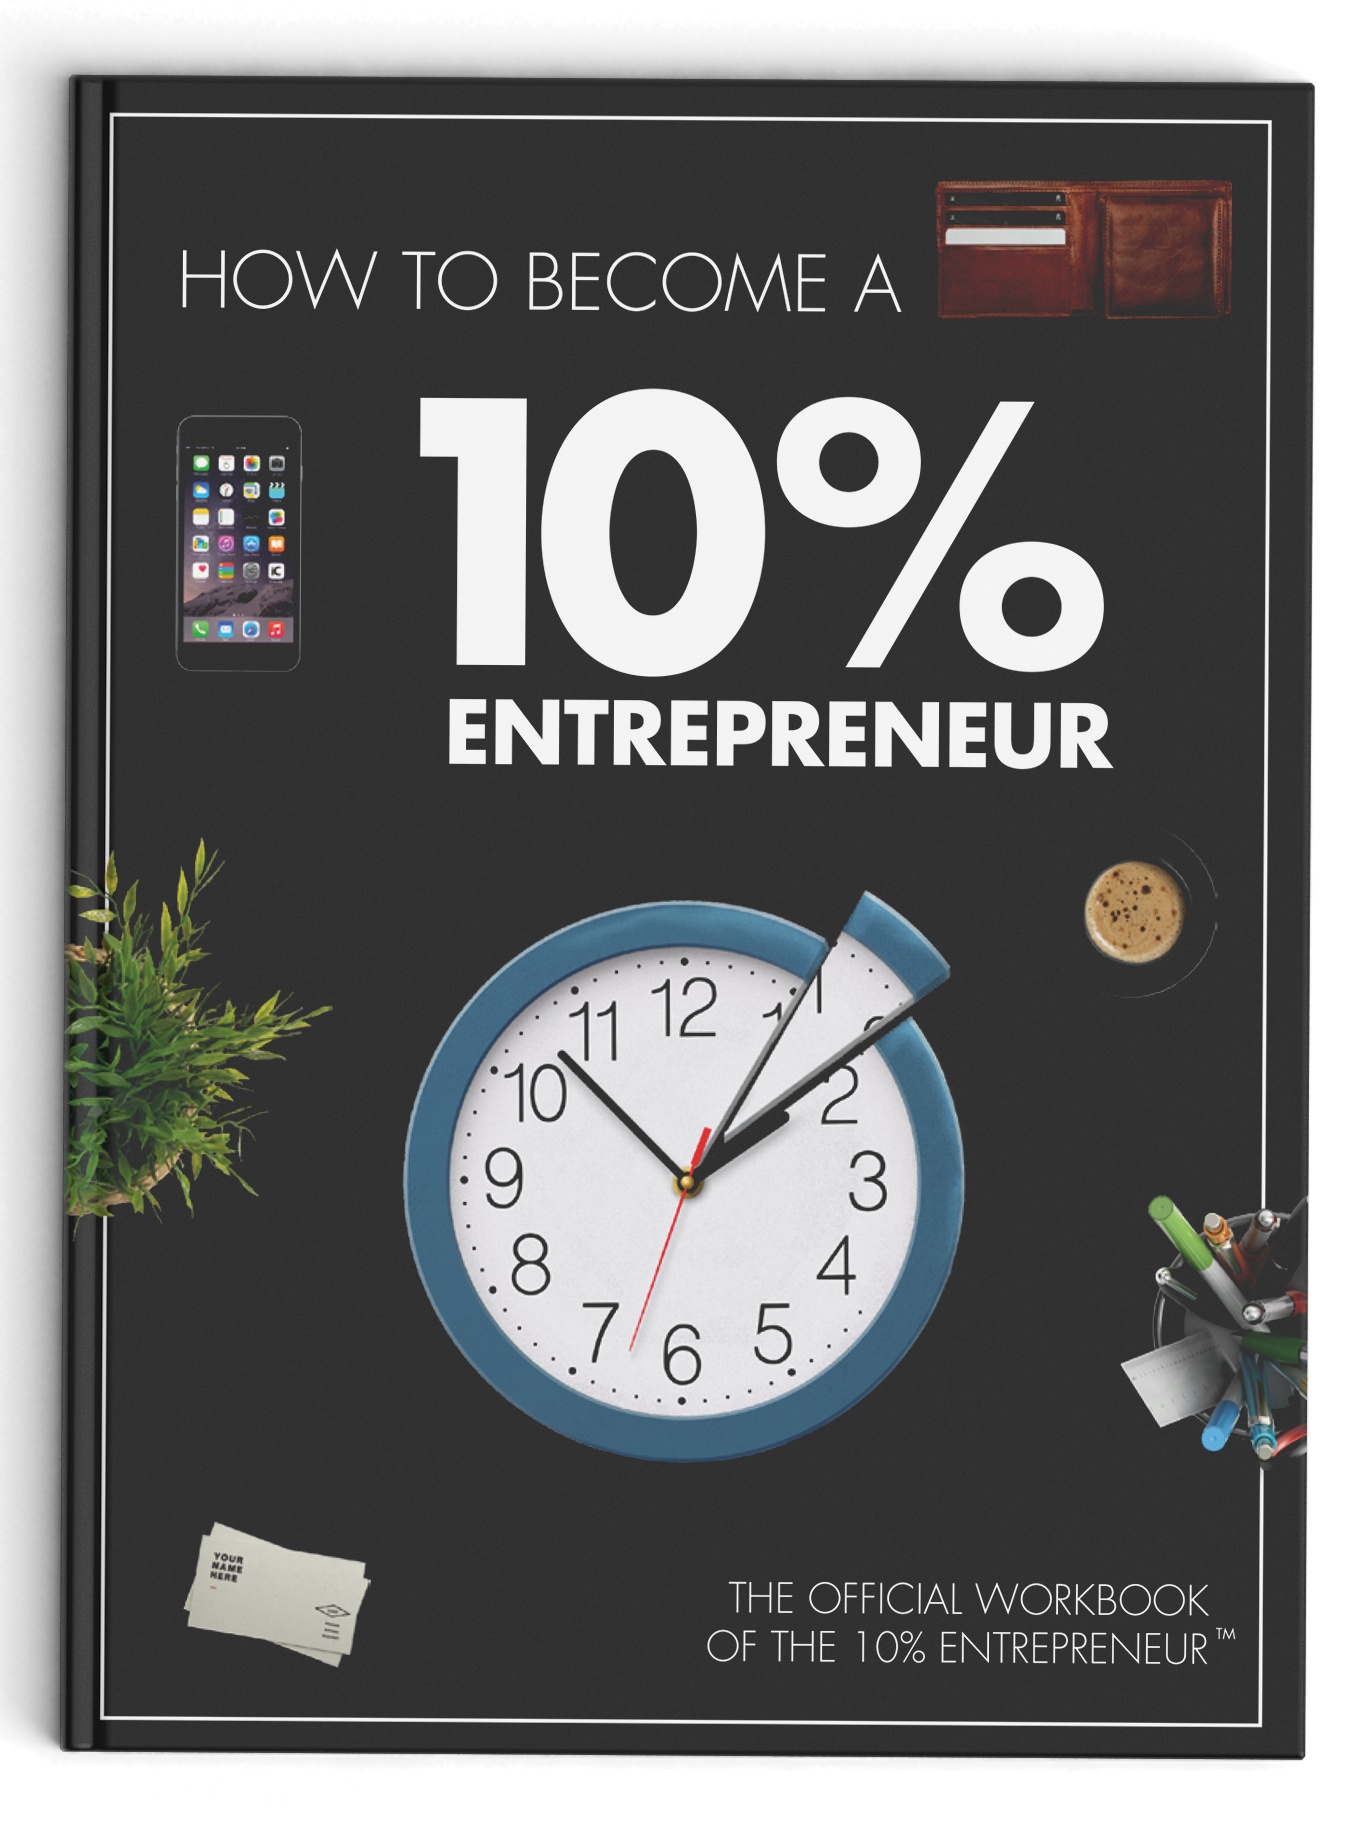 E-book How to Become a 10% Entrepreneur